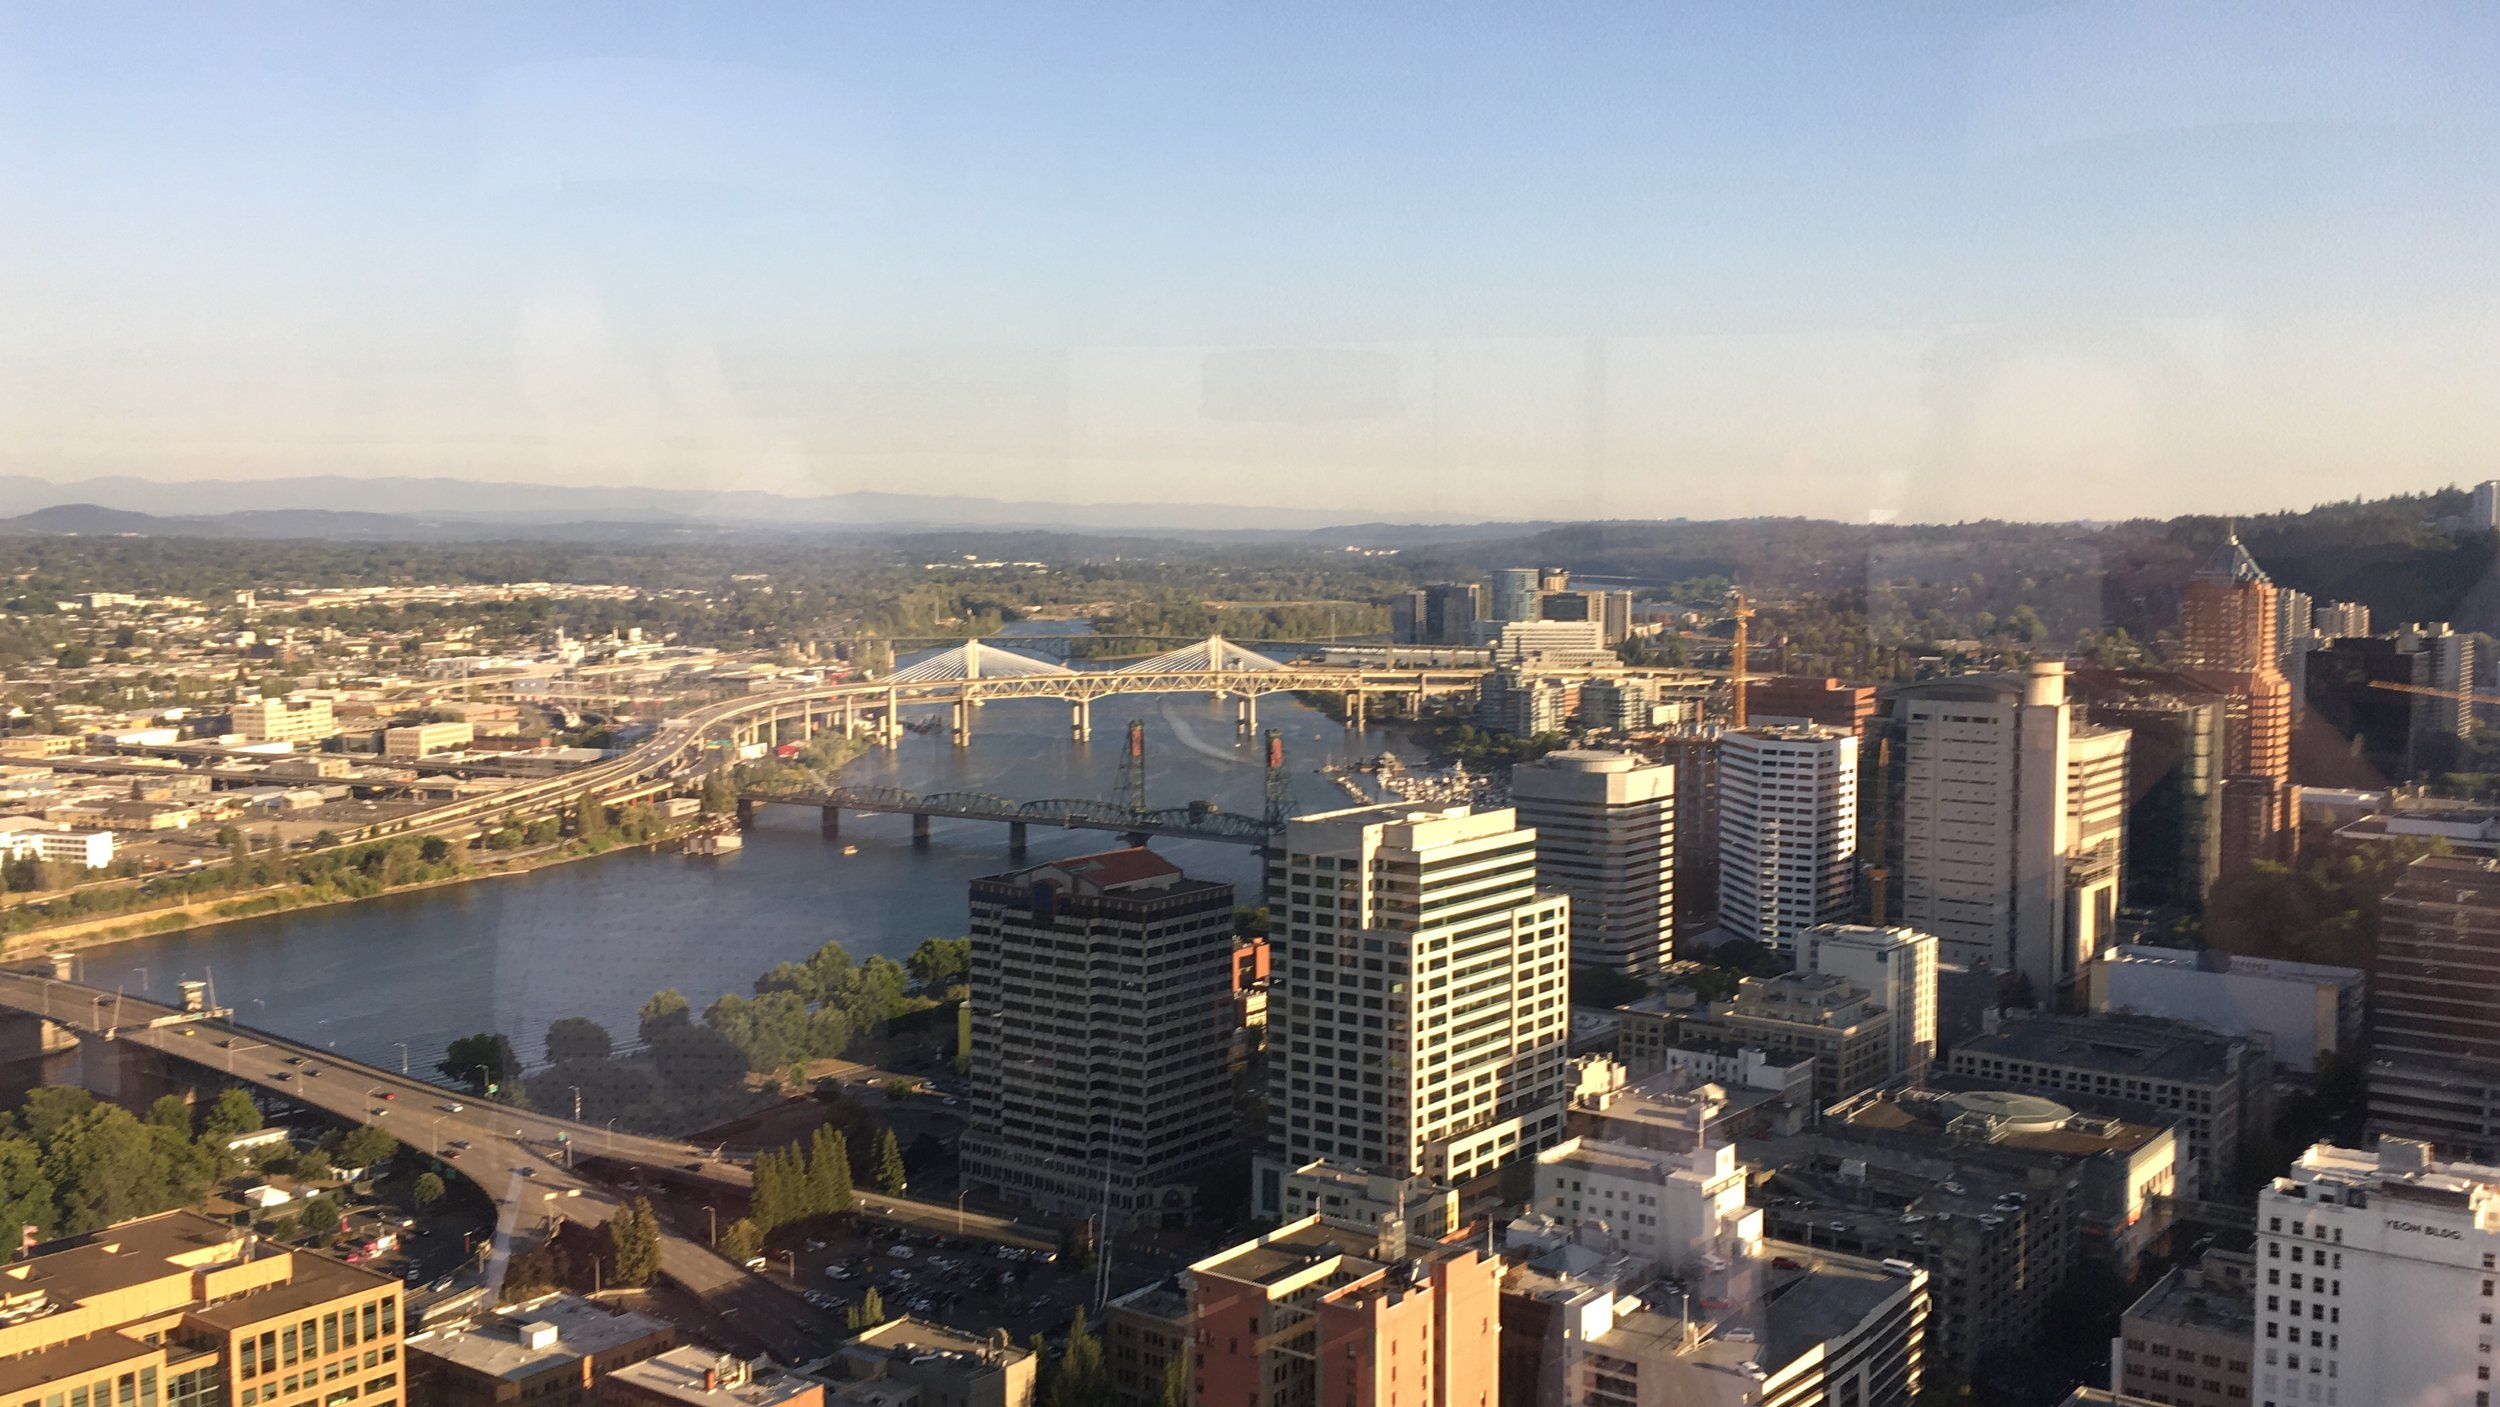 2018 view from Judd's Portland, Oregon office